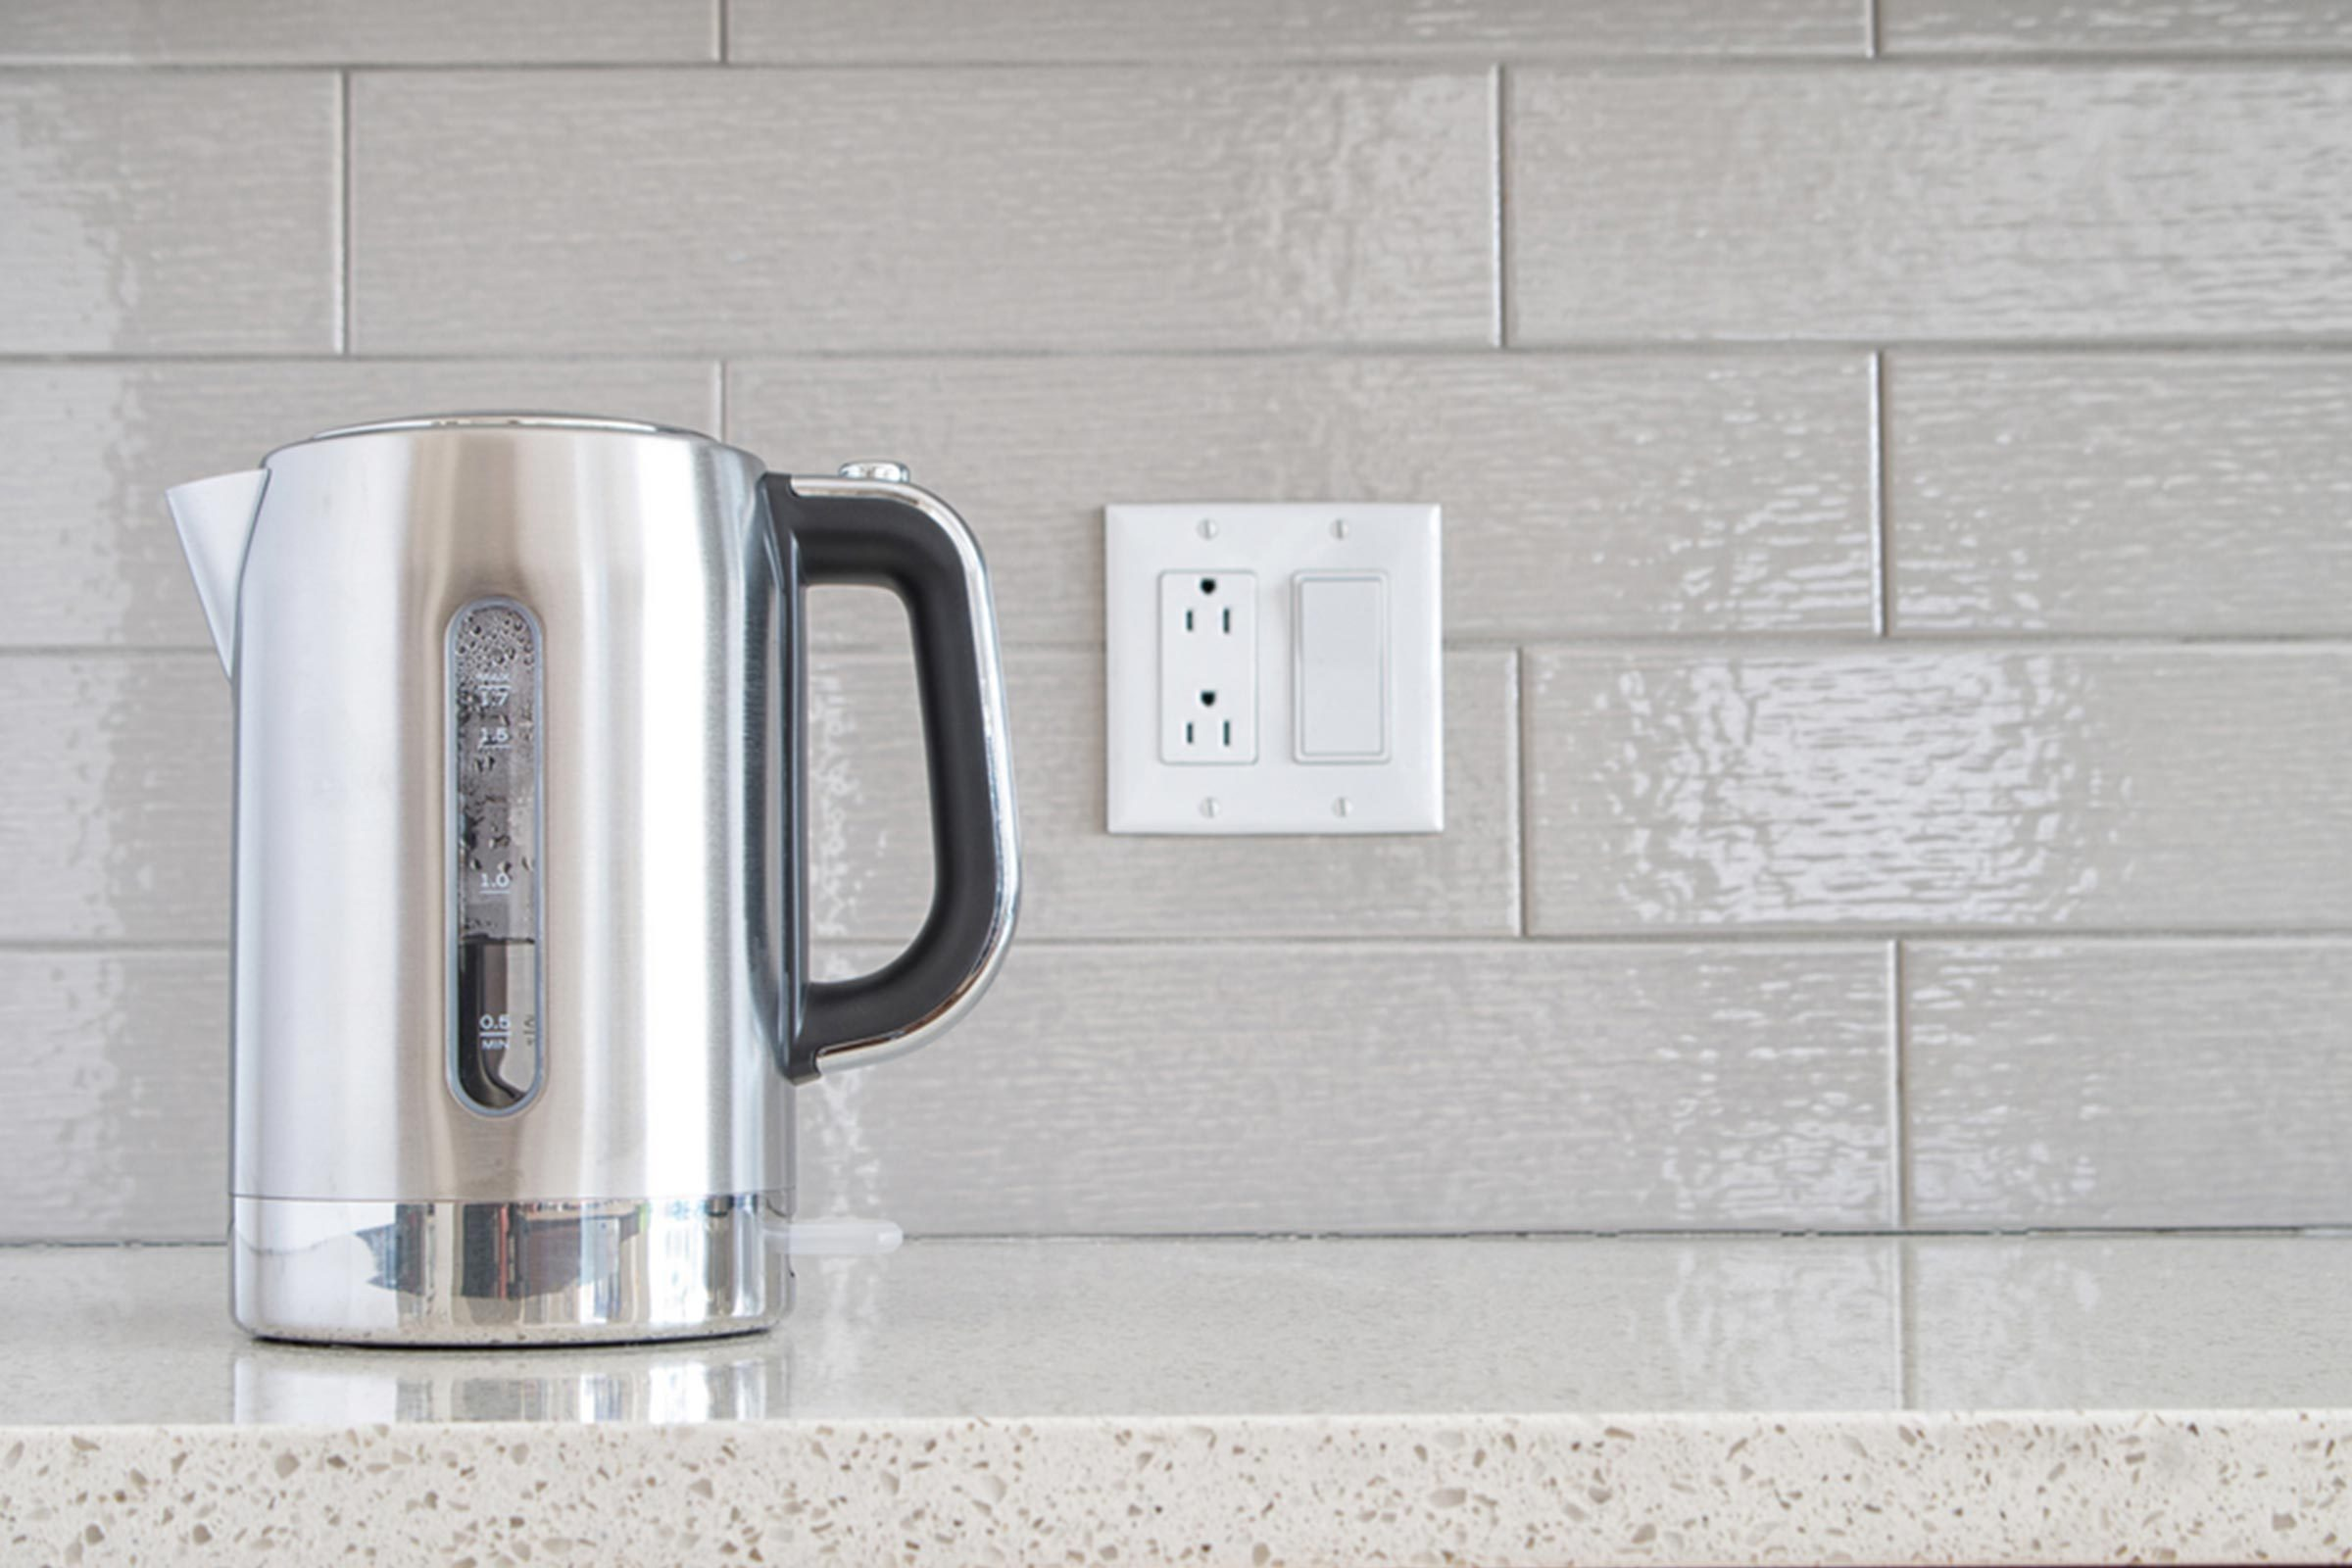 kitchen water tea steam stainless steel appliance